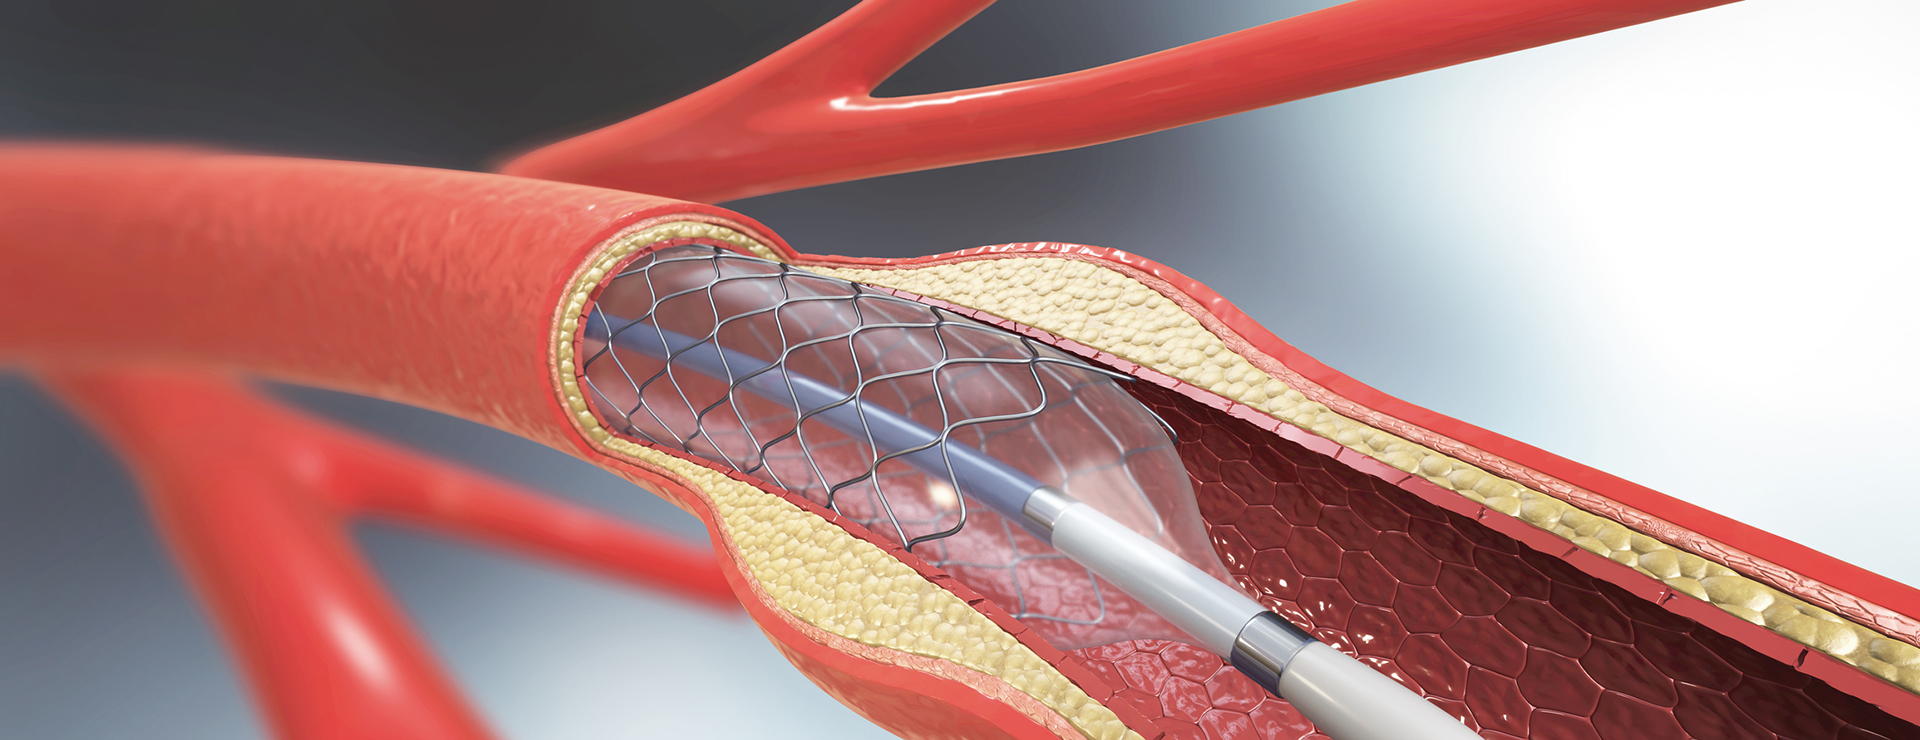 angioplasty heart stent - 3d graphic of stent implant in coronary artery